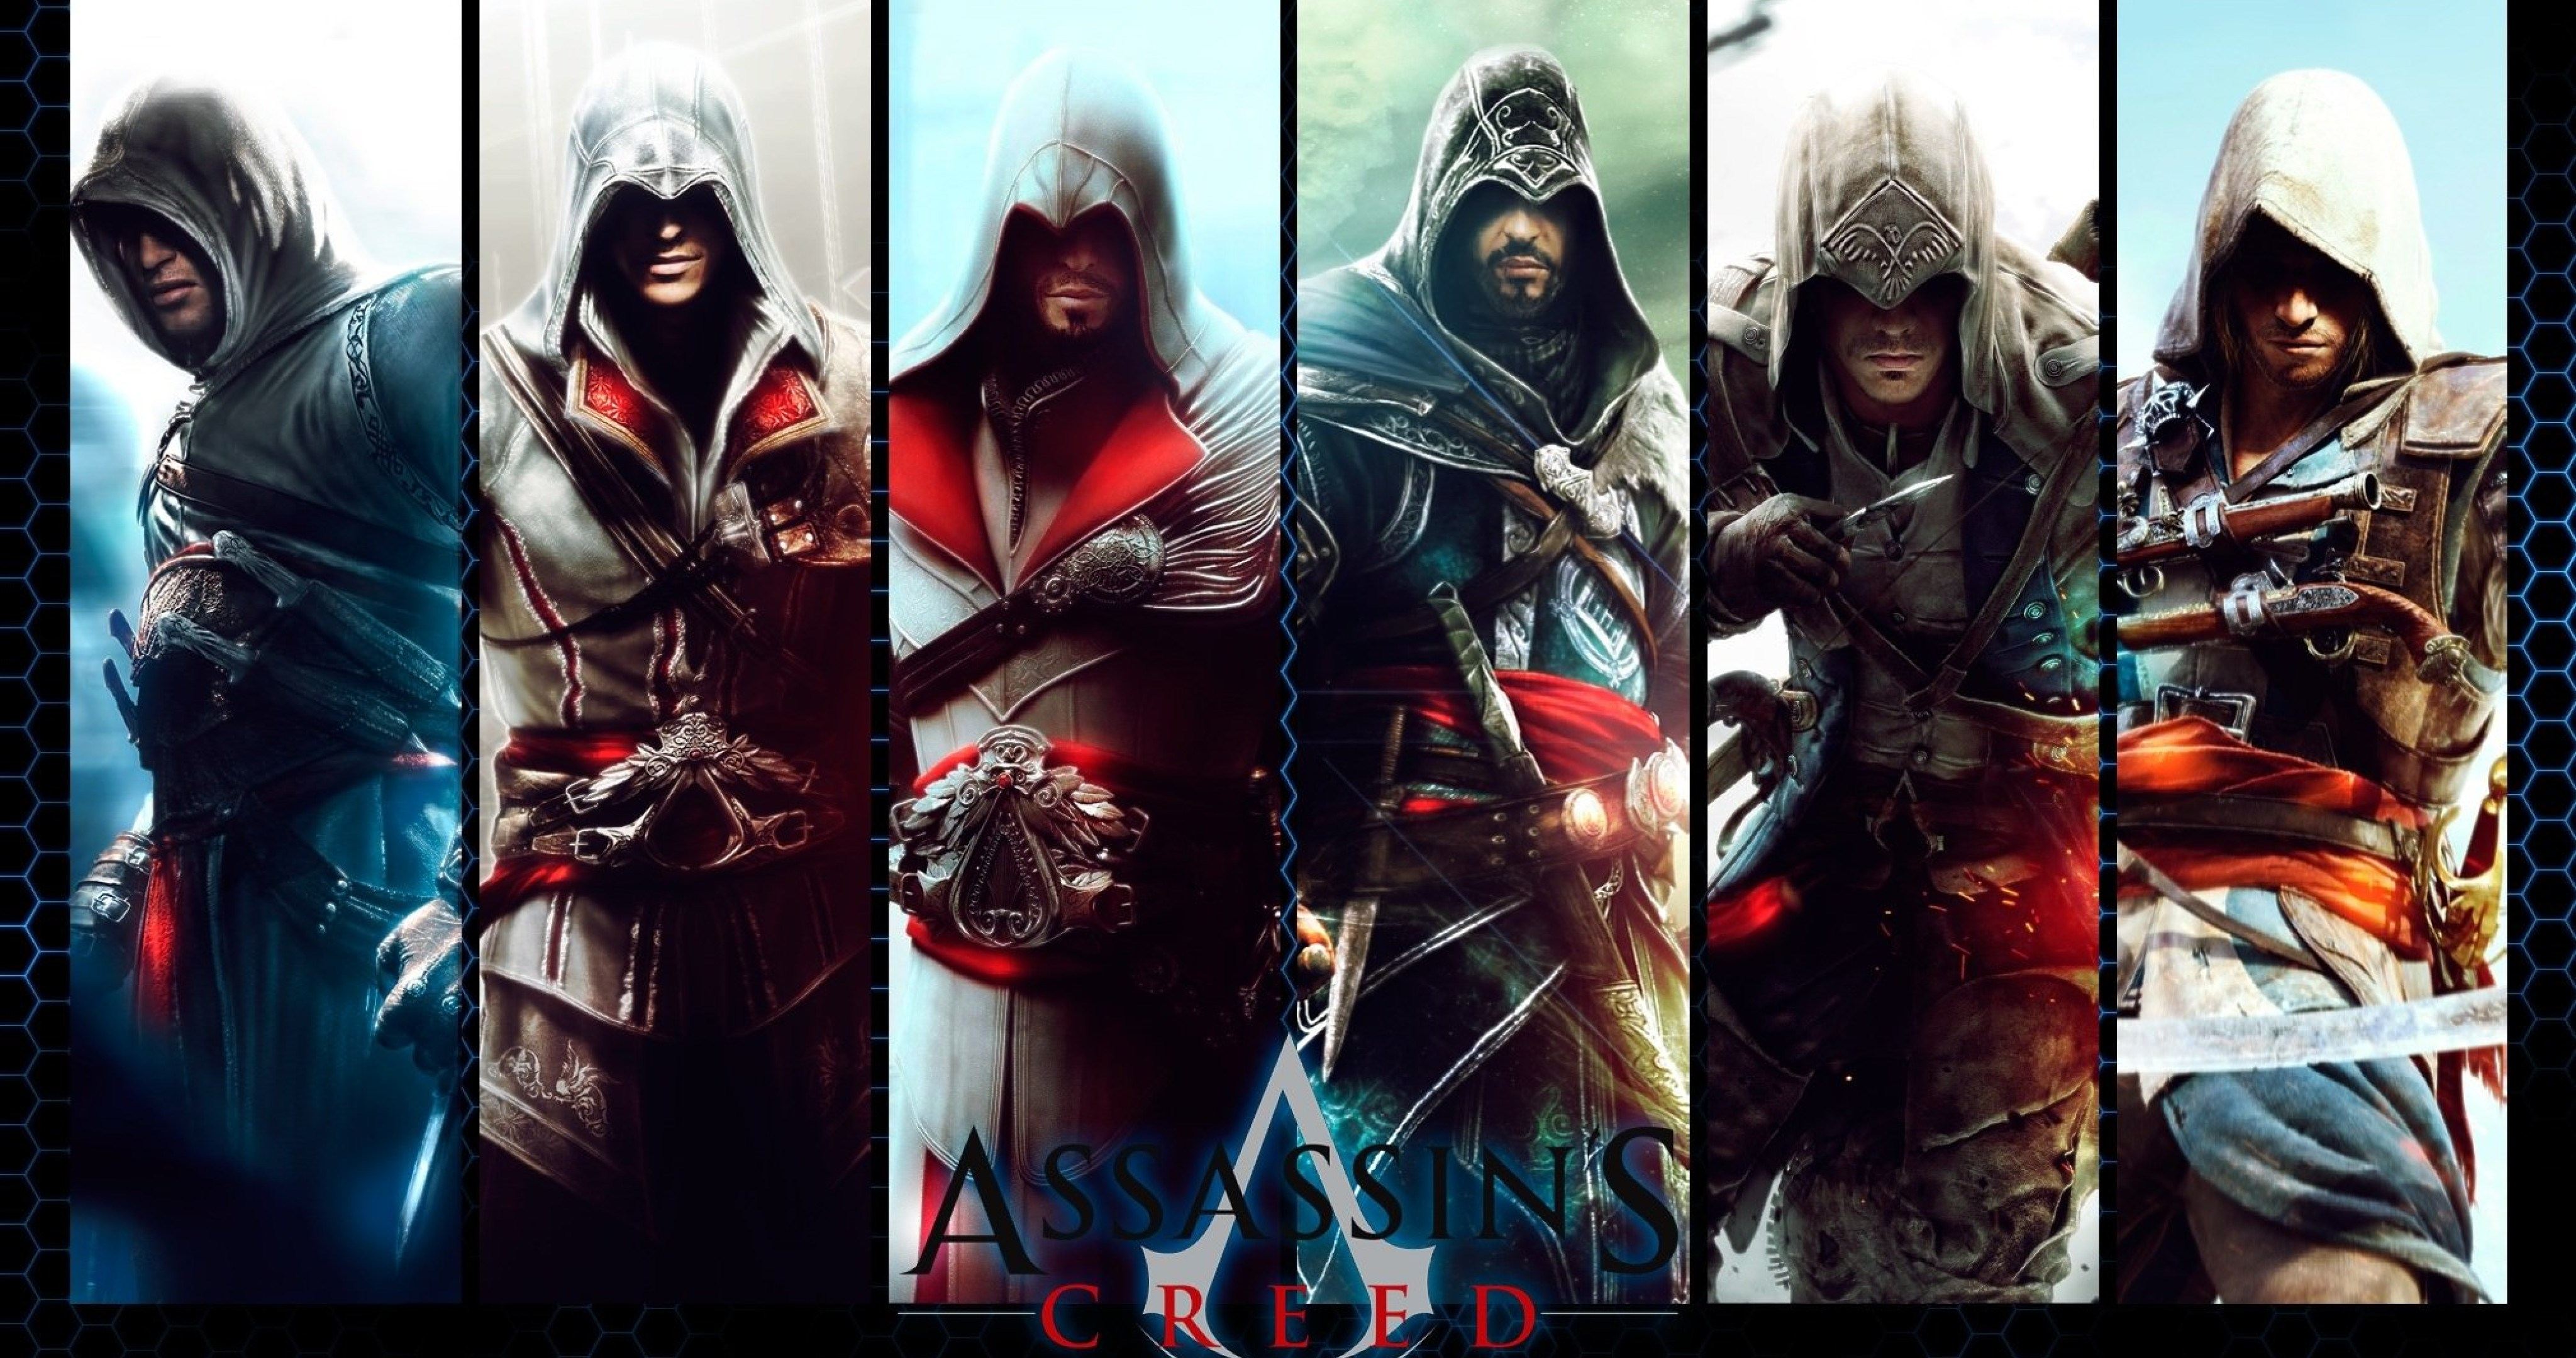 Assassins Creed Game Characters 4k Ultra Hd Wallpaper